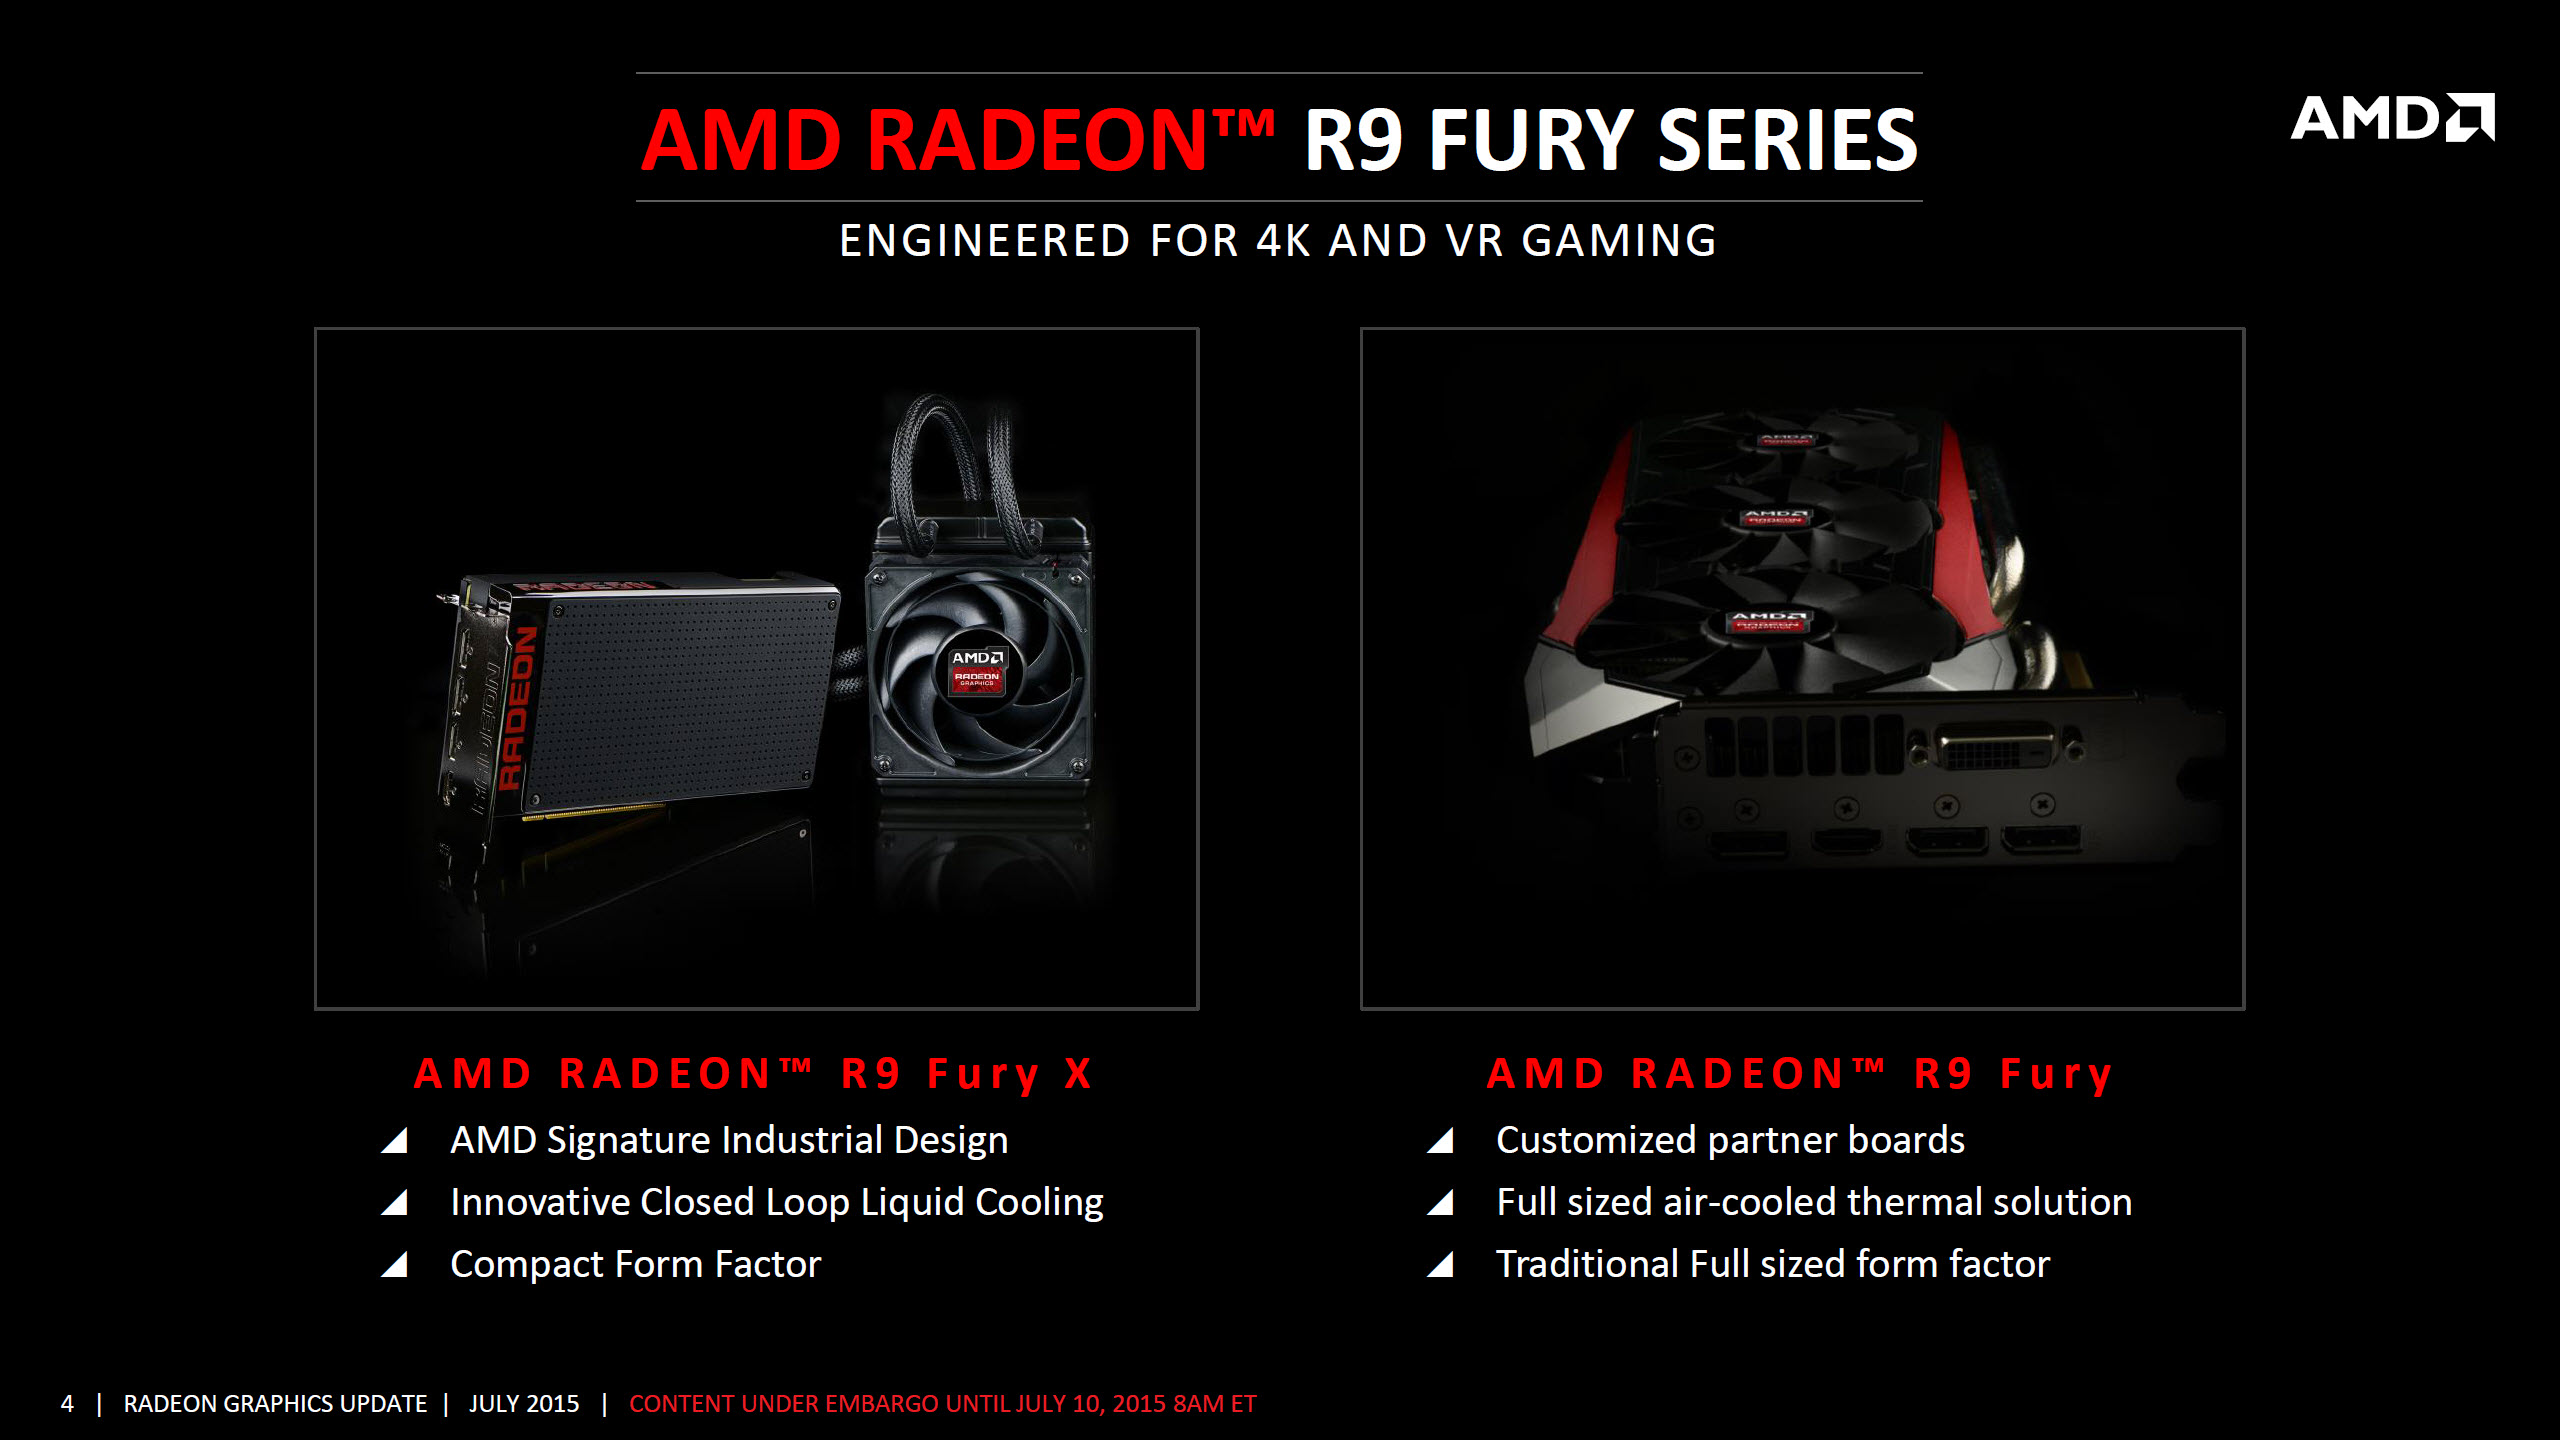 ASUS R9 FURY X SERIES DRIVERS FOR WINDOWS 10